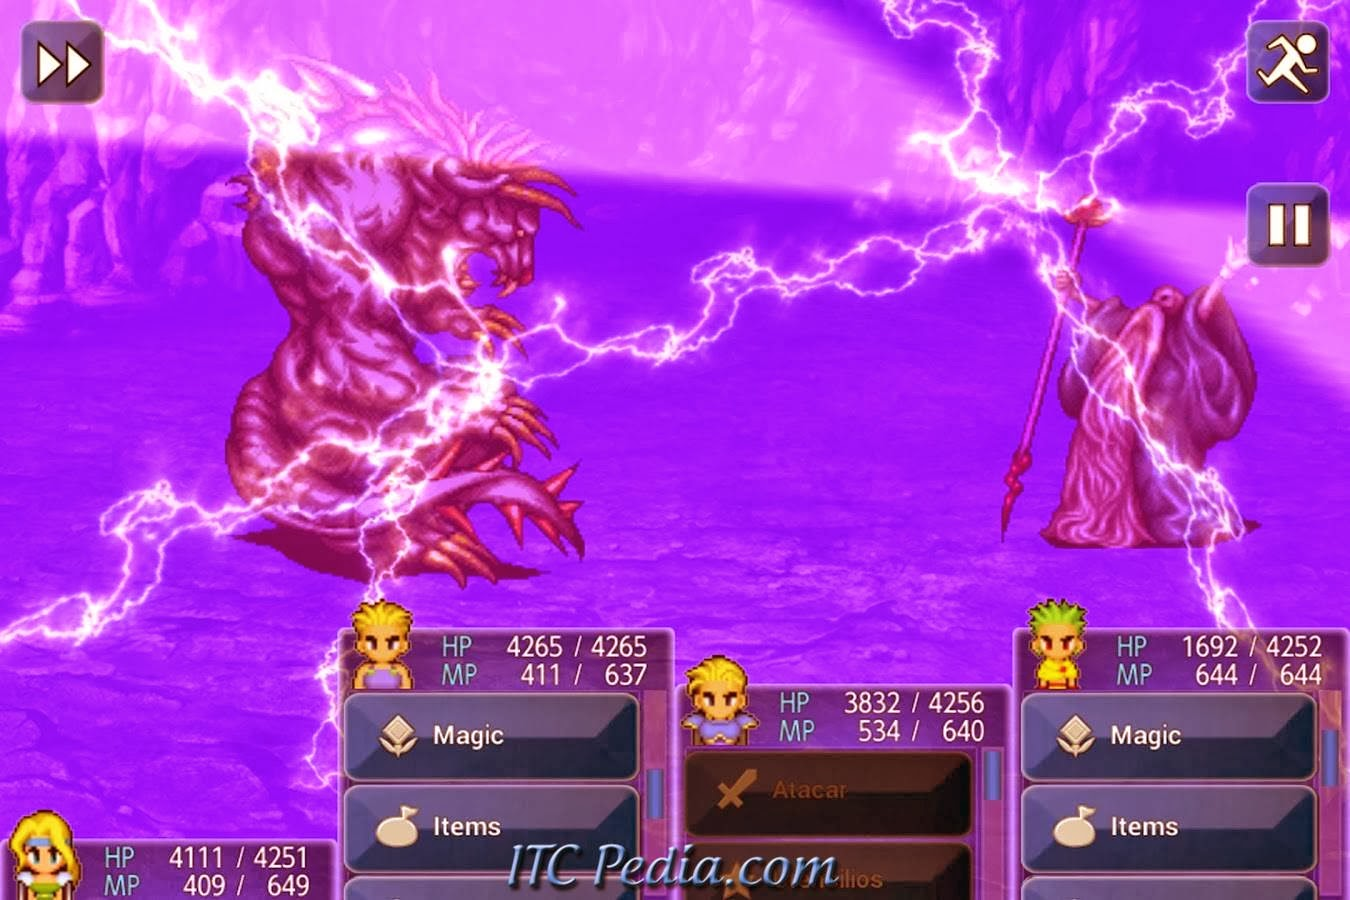 [ITC Pedia.com] [PL] FINAL FANTASY VI v1.0.0 FOR ANDROID